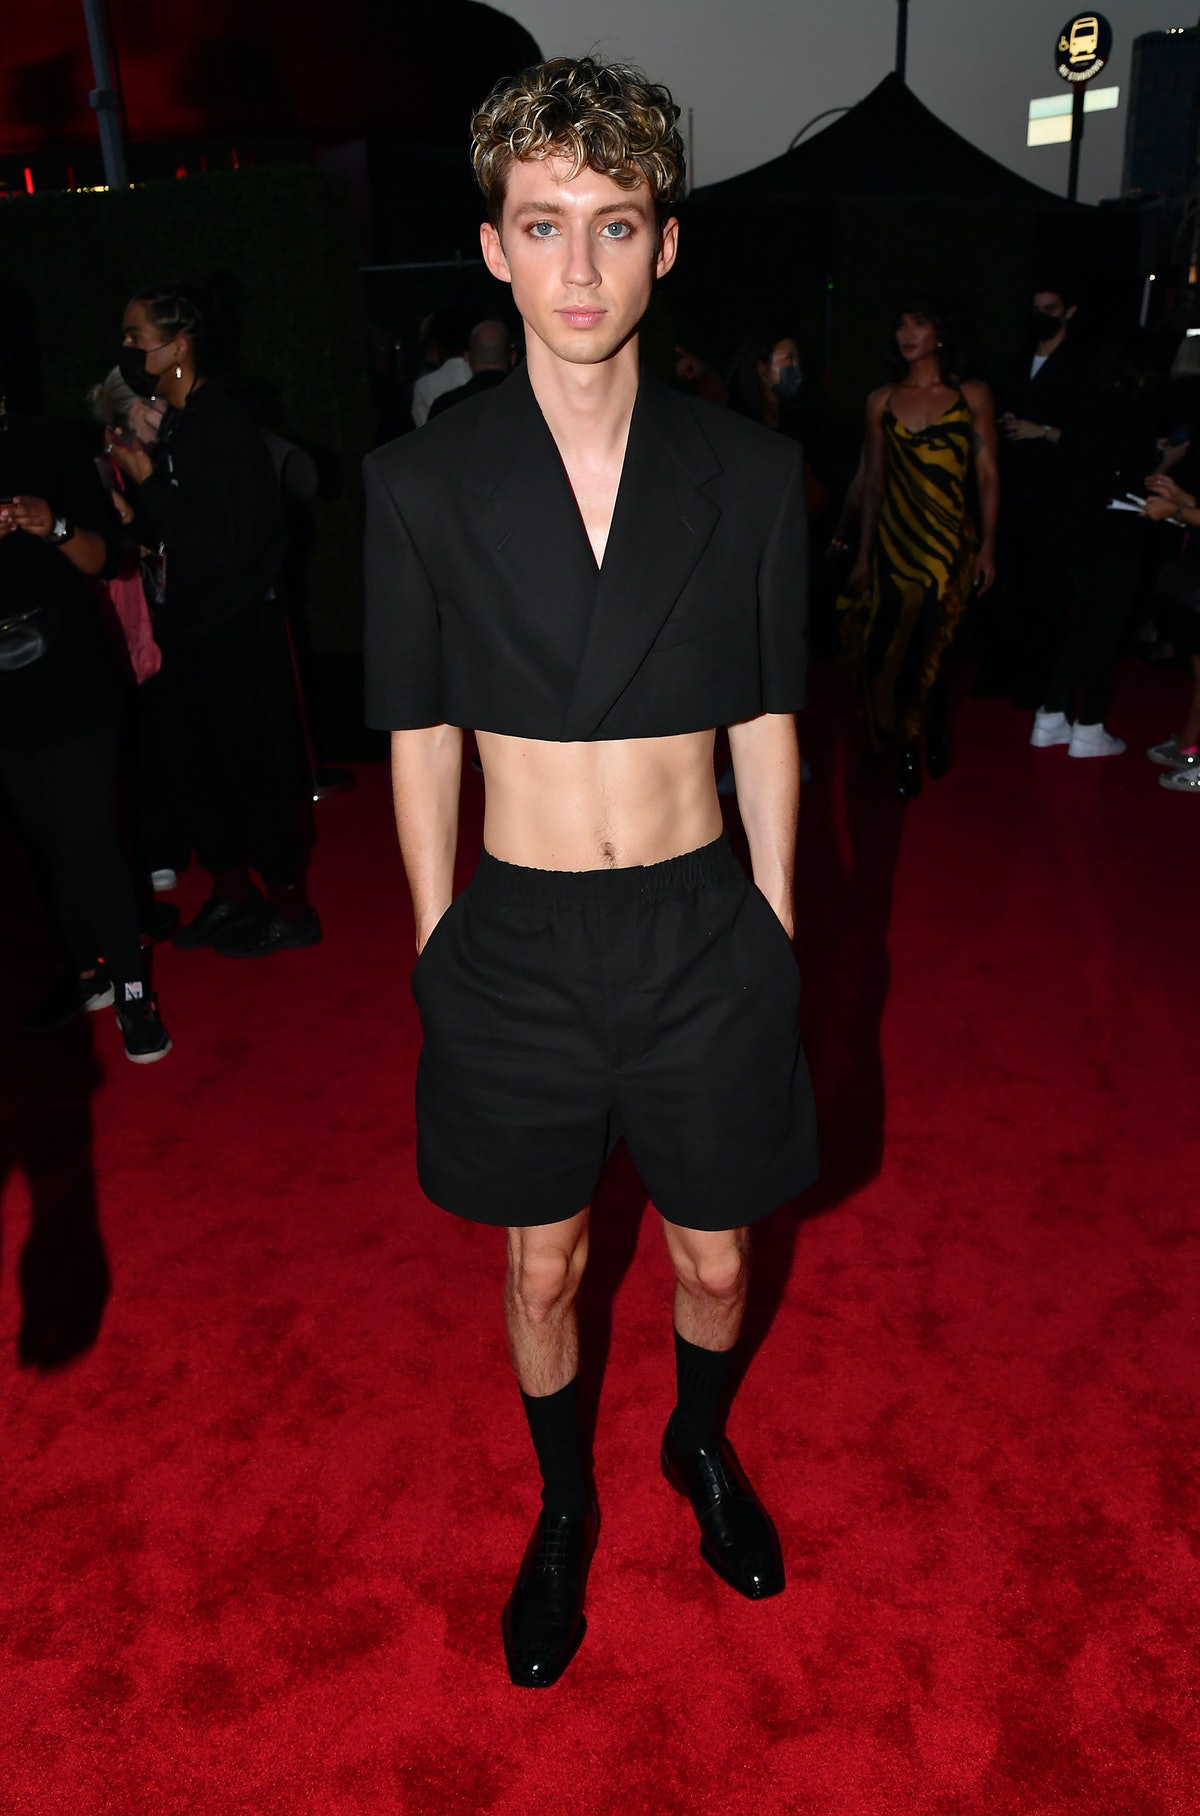 Troye Sivan attends the 2021 MTV Video Music Awards at Barclays Center on September 12, 2021 in the...